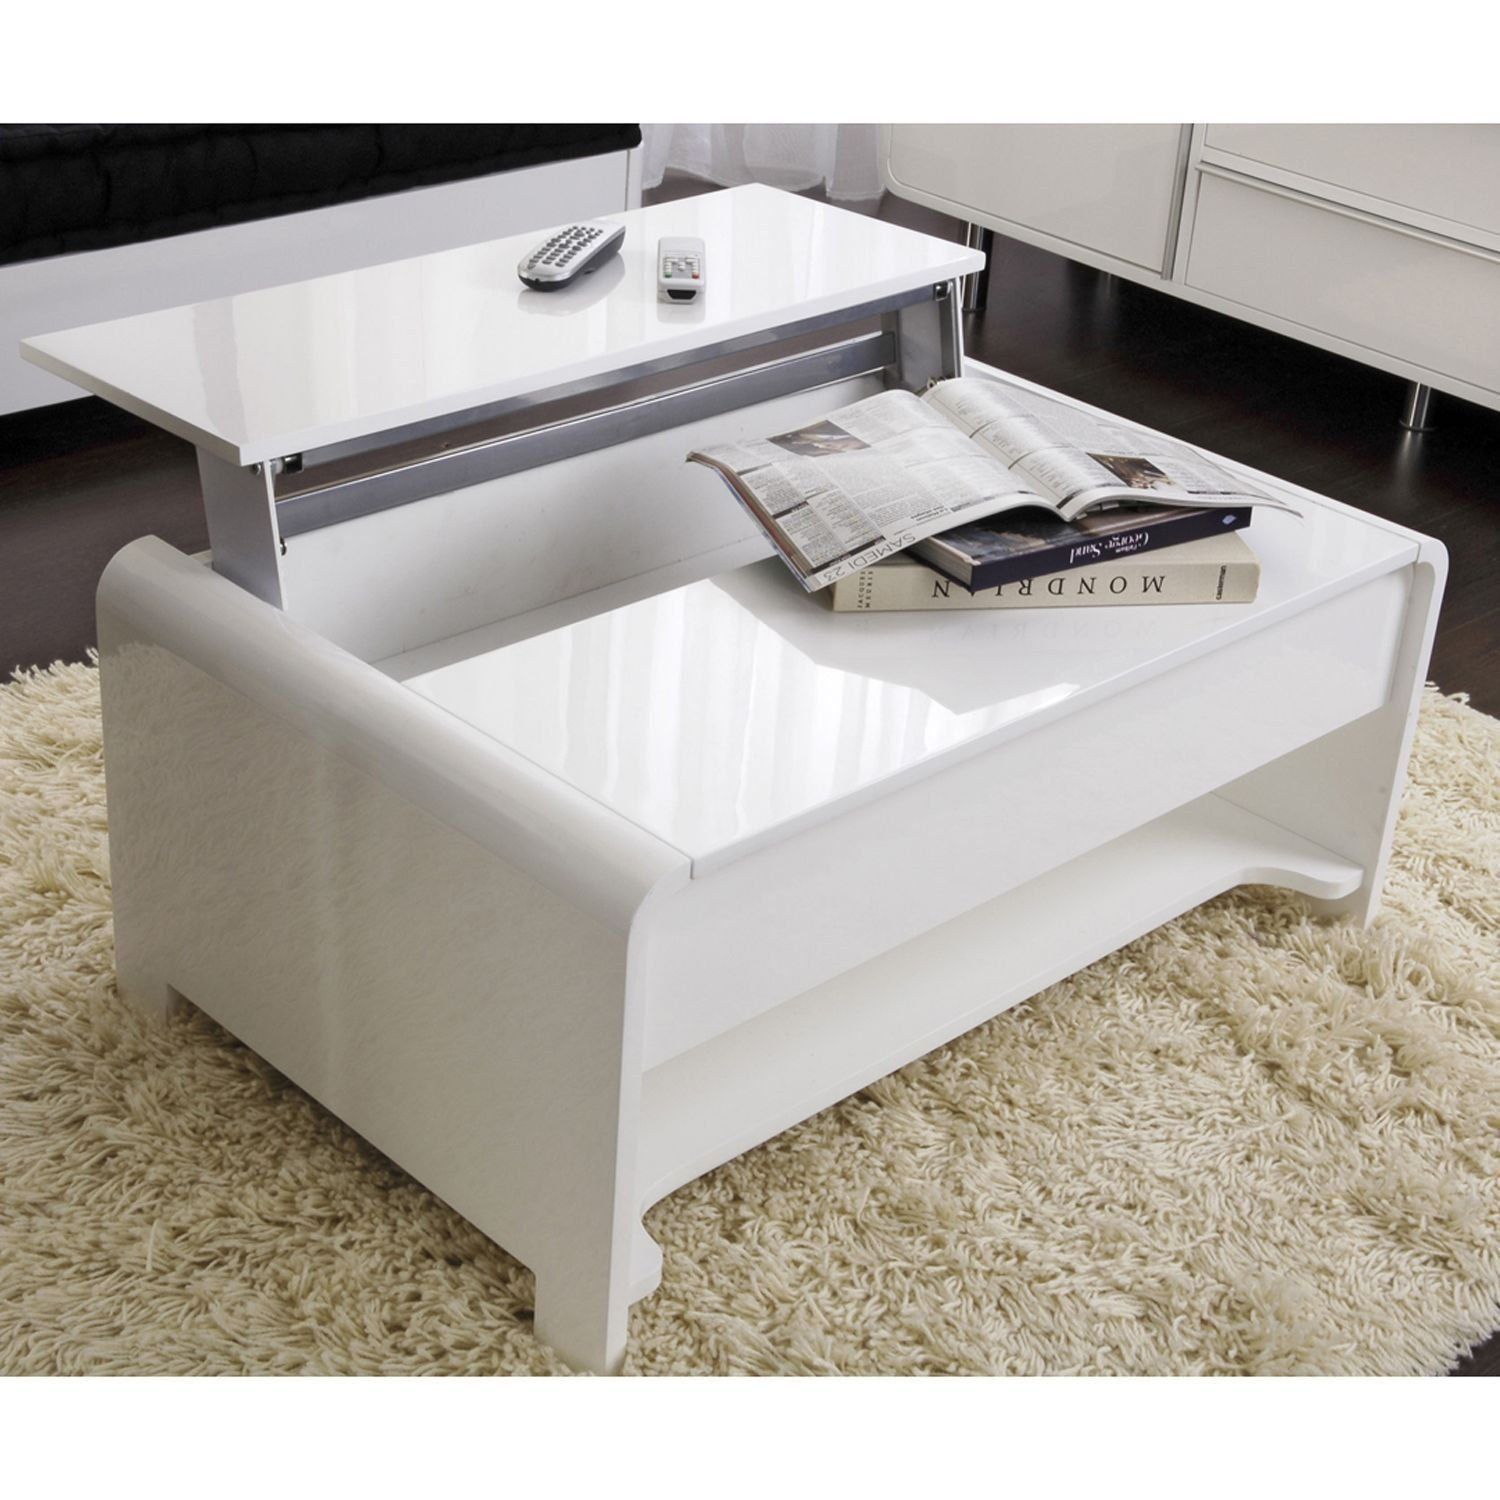 Epingle Par Anna L Sur Les Meubles Table Basse Table Basse